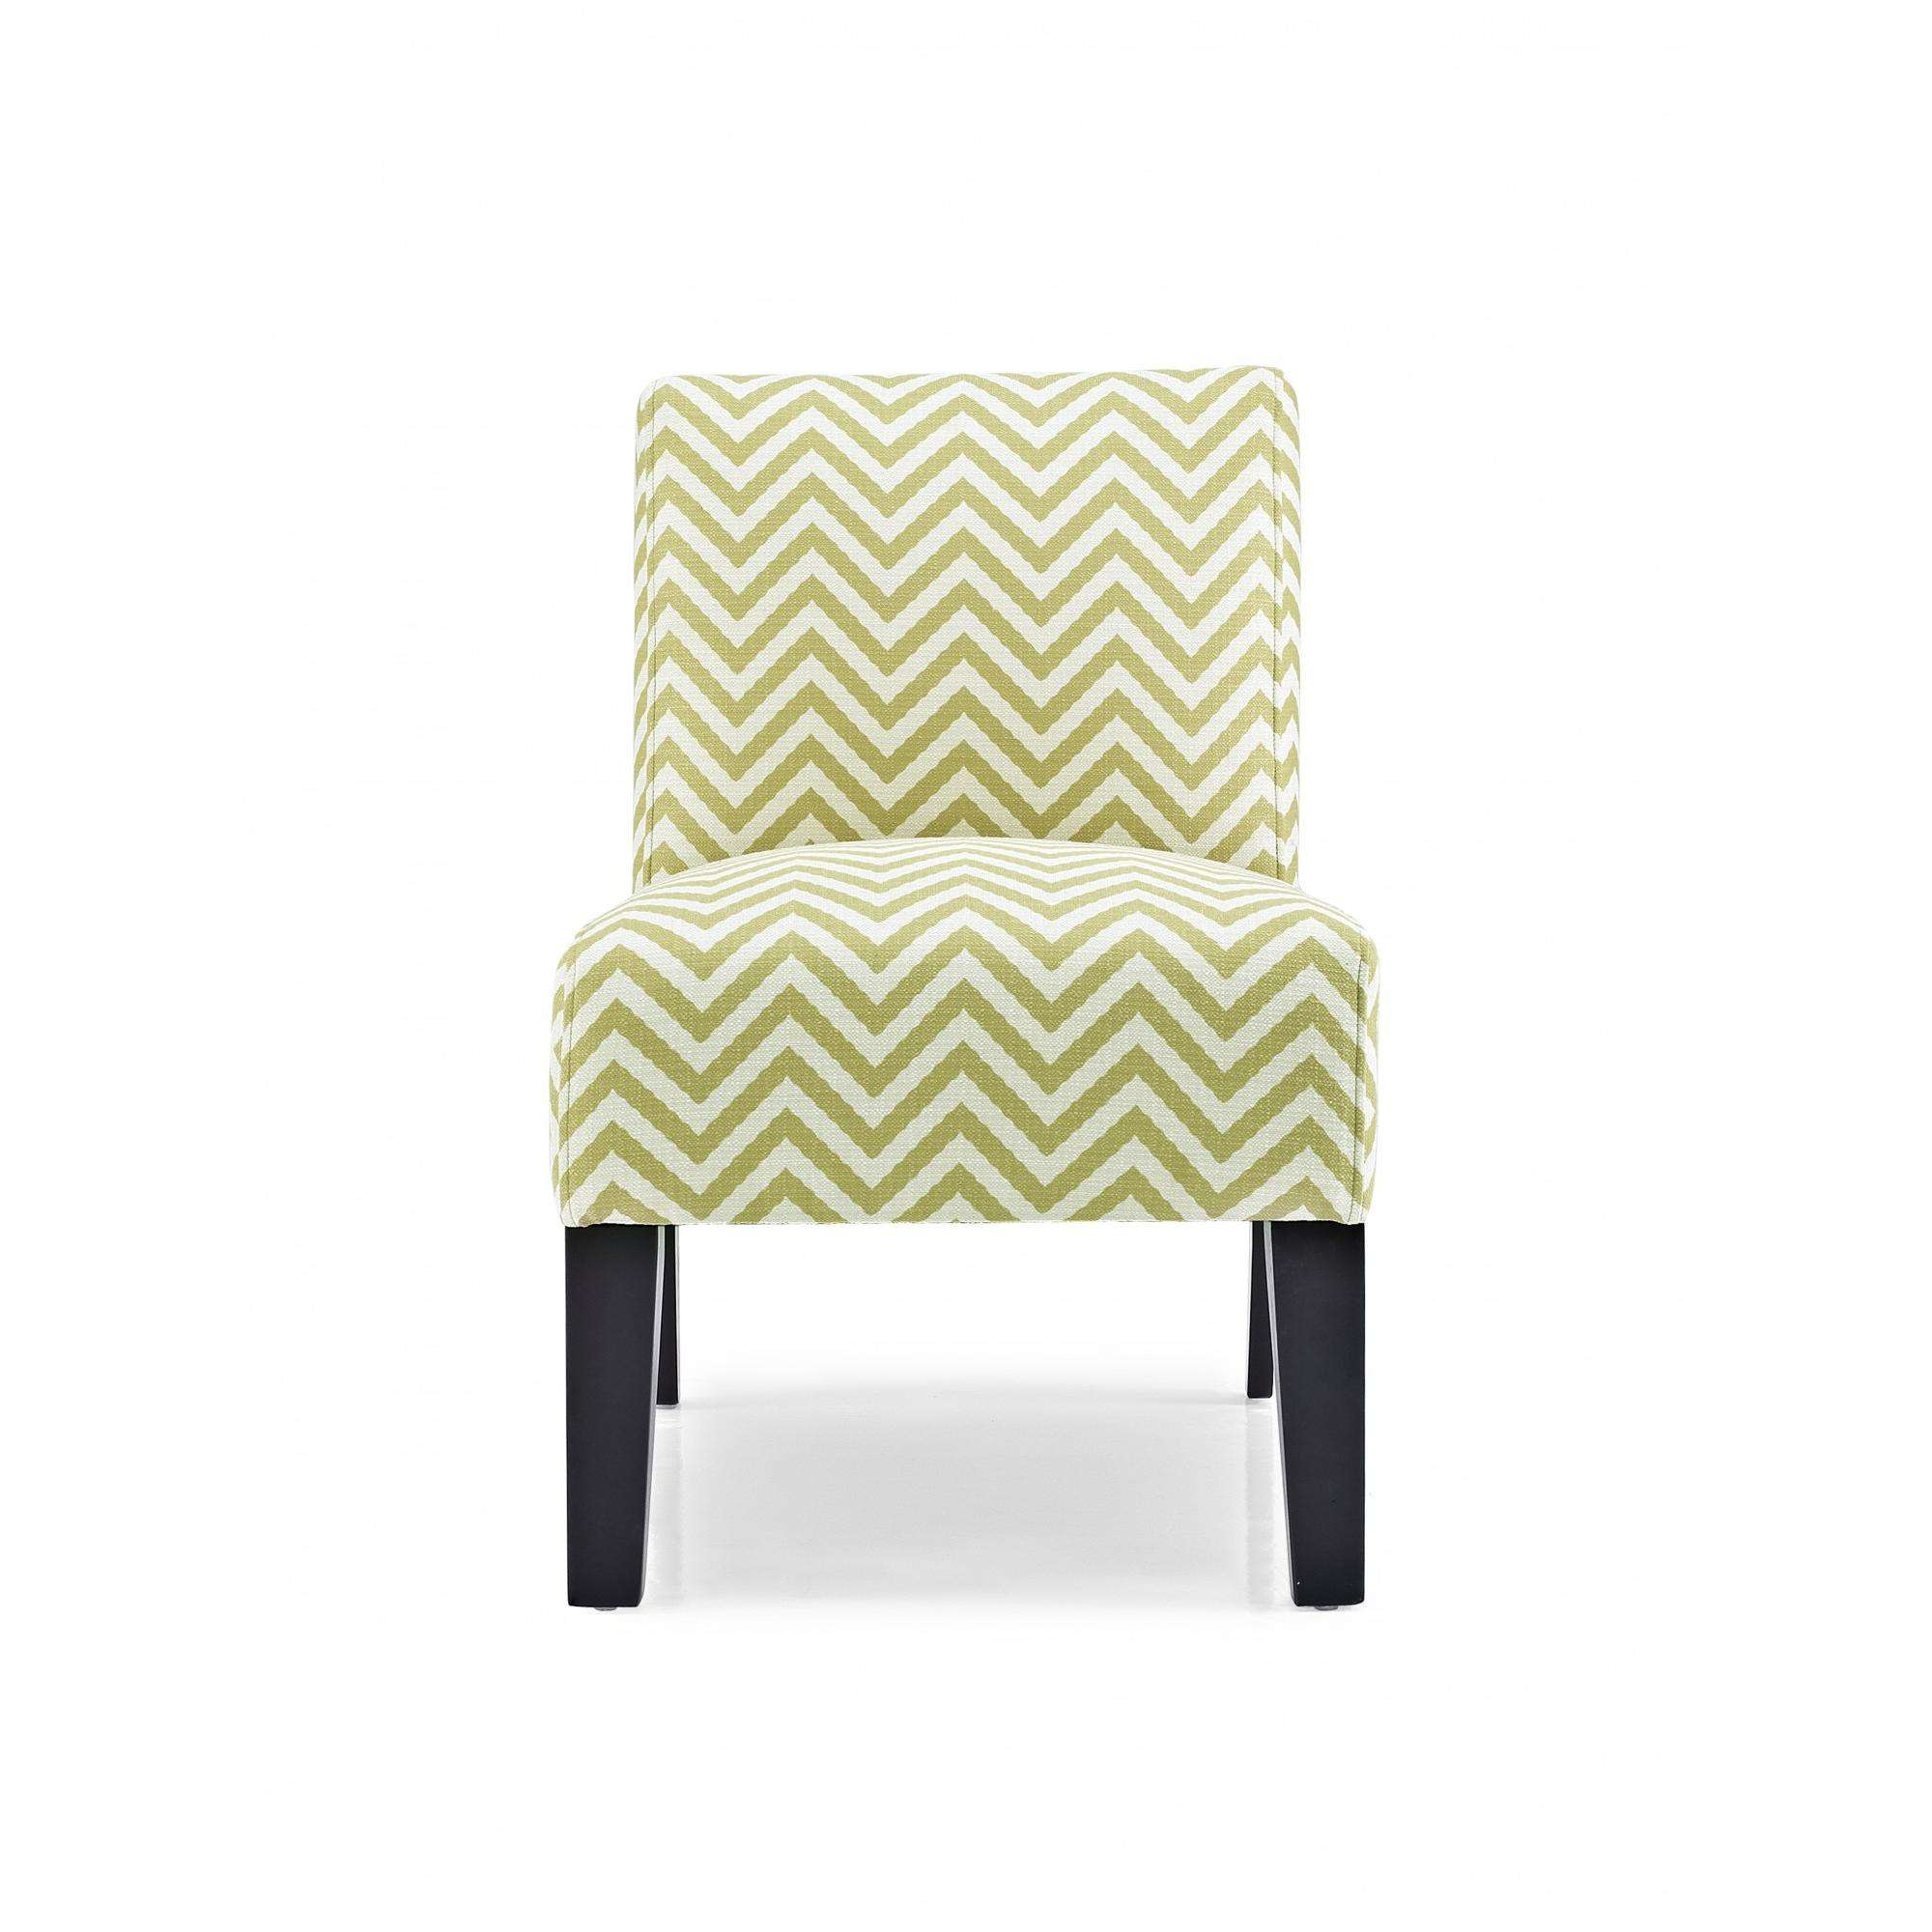 Allegro Ziggi Upholstered Accent Chair, Multiple Colors by Dwell Home Inc